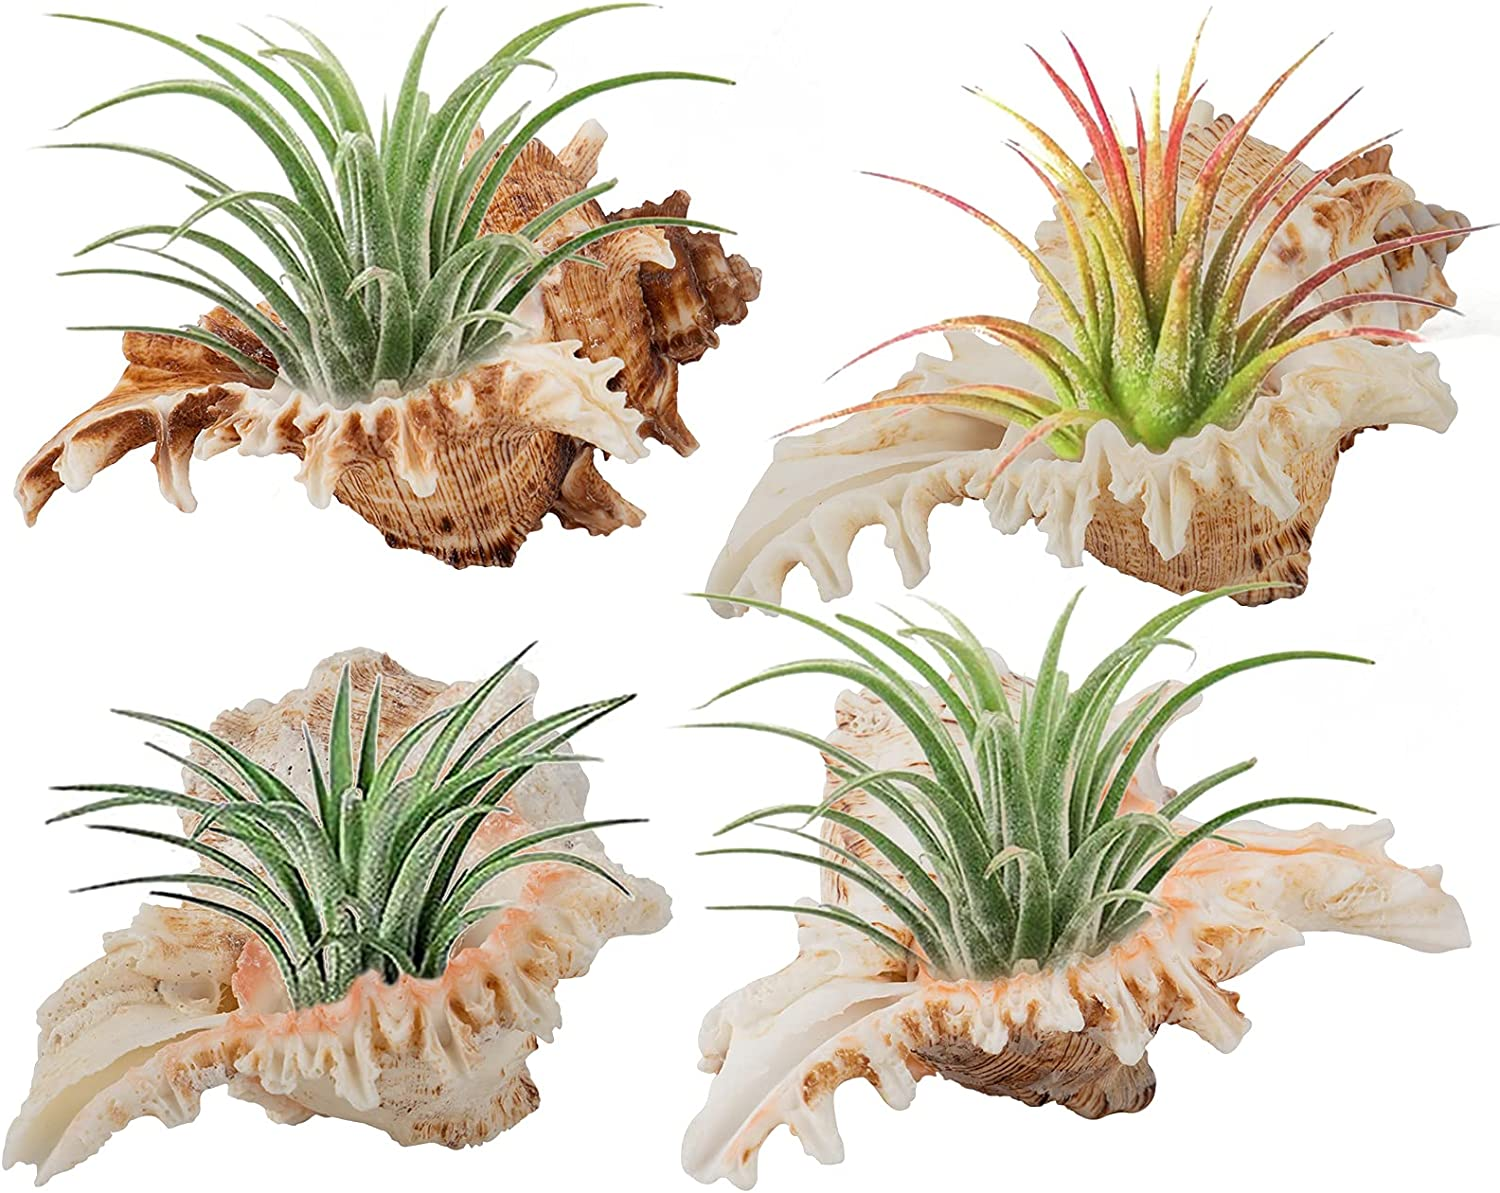 4 Pack Conch Sea Shell Plant Pots- Natural Conch Pot Air Plant Holder Decorative Tillandsia Succulent Display Container Table Centerpiece for Home Garden Decors Beach Theme Party Favors (4- 5 inches)